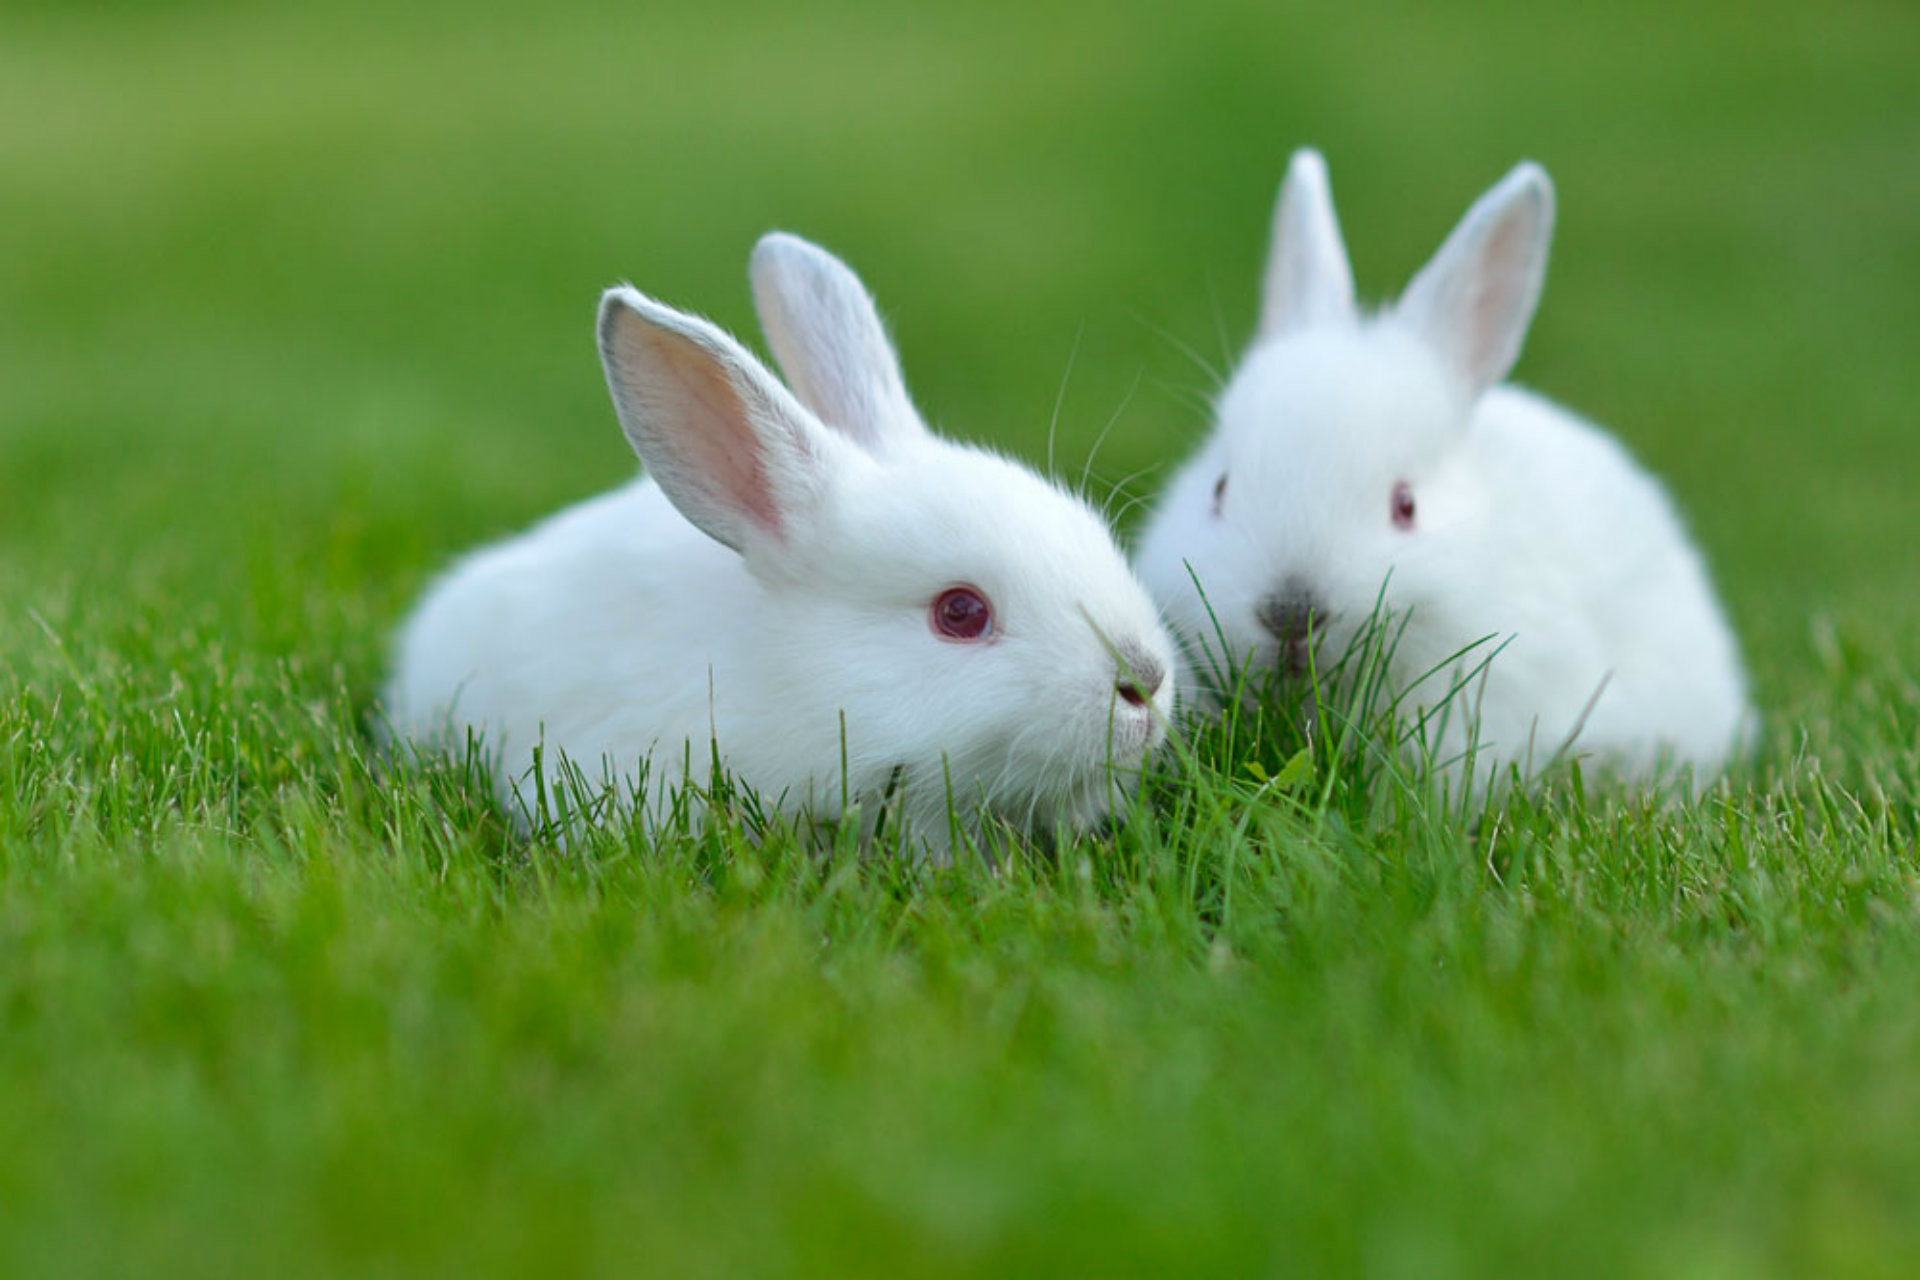 Cute pet rabbits